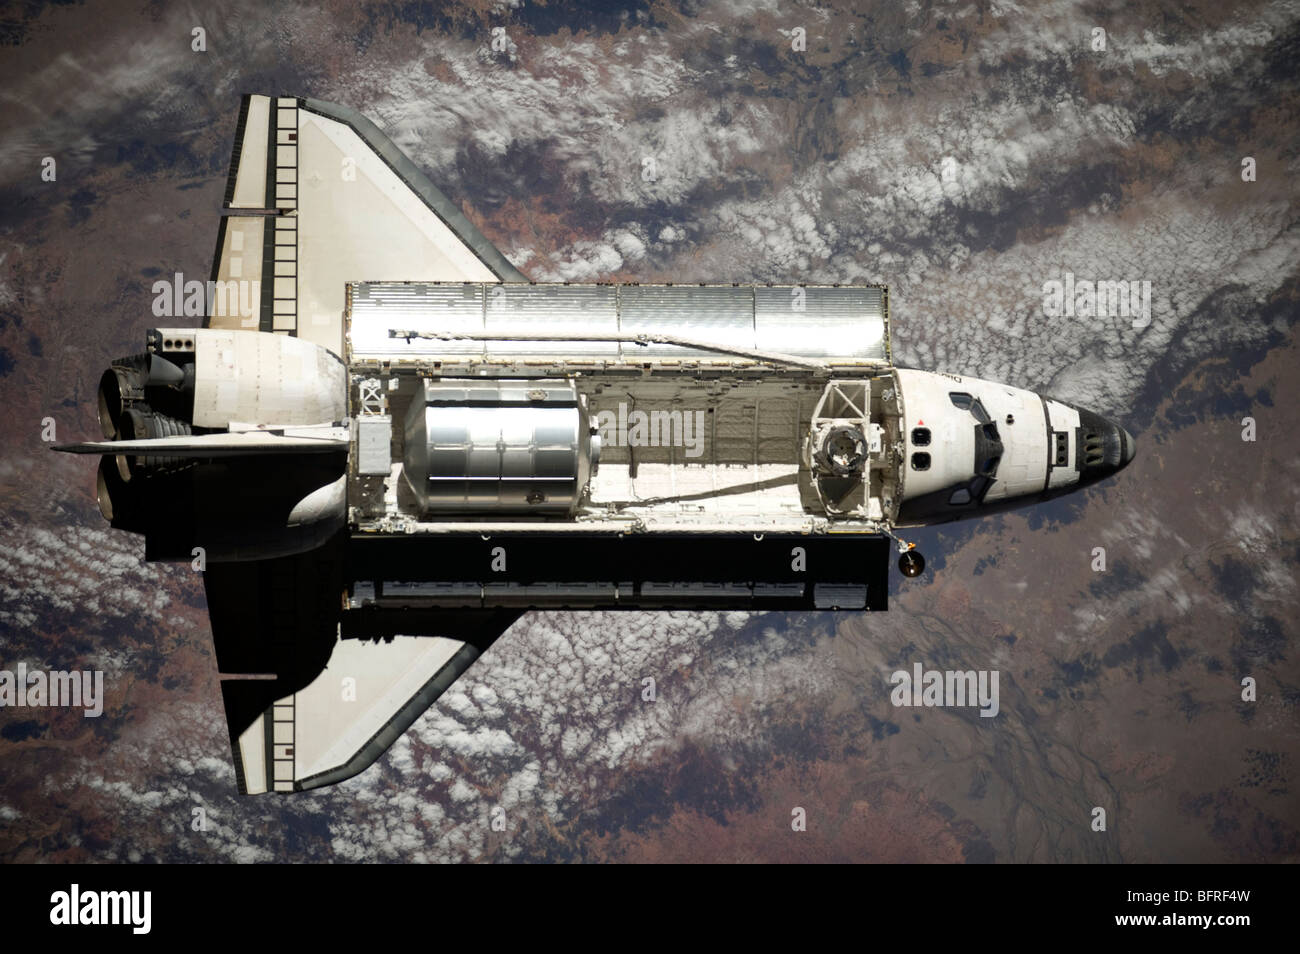 Space Shuttle Discovery - Stock Image